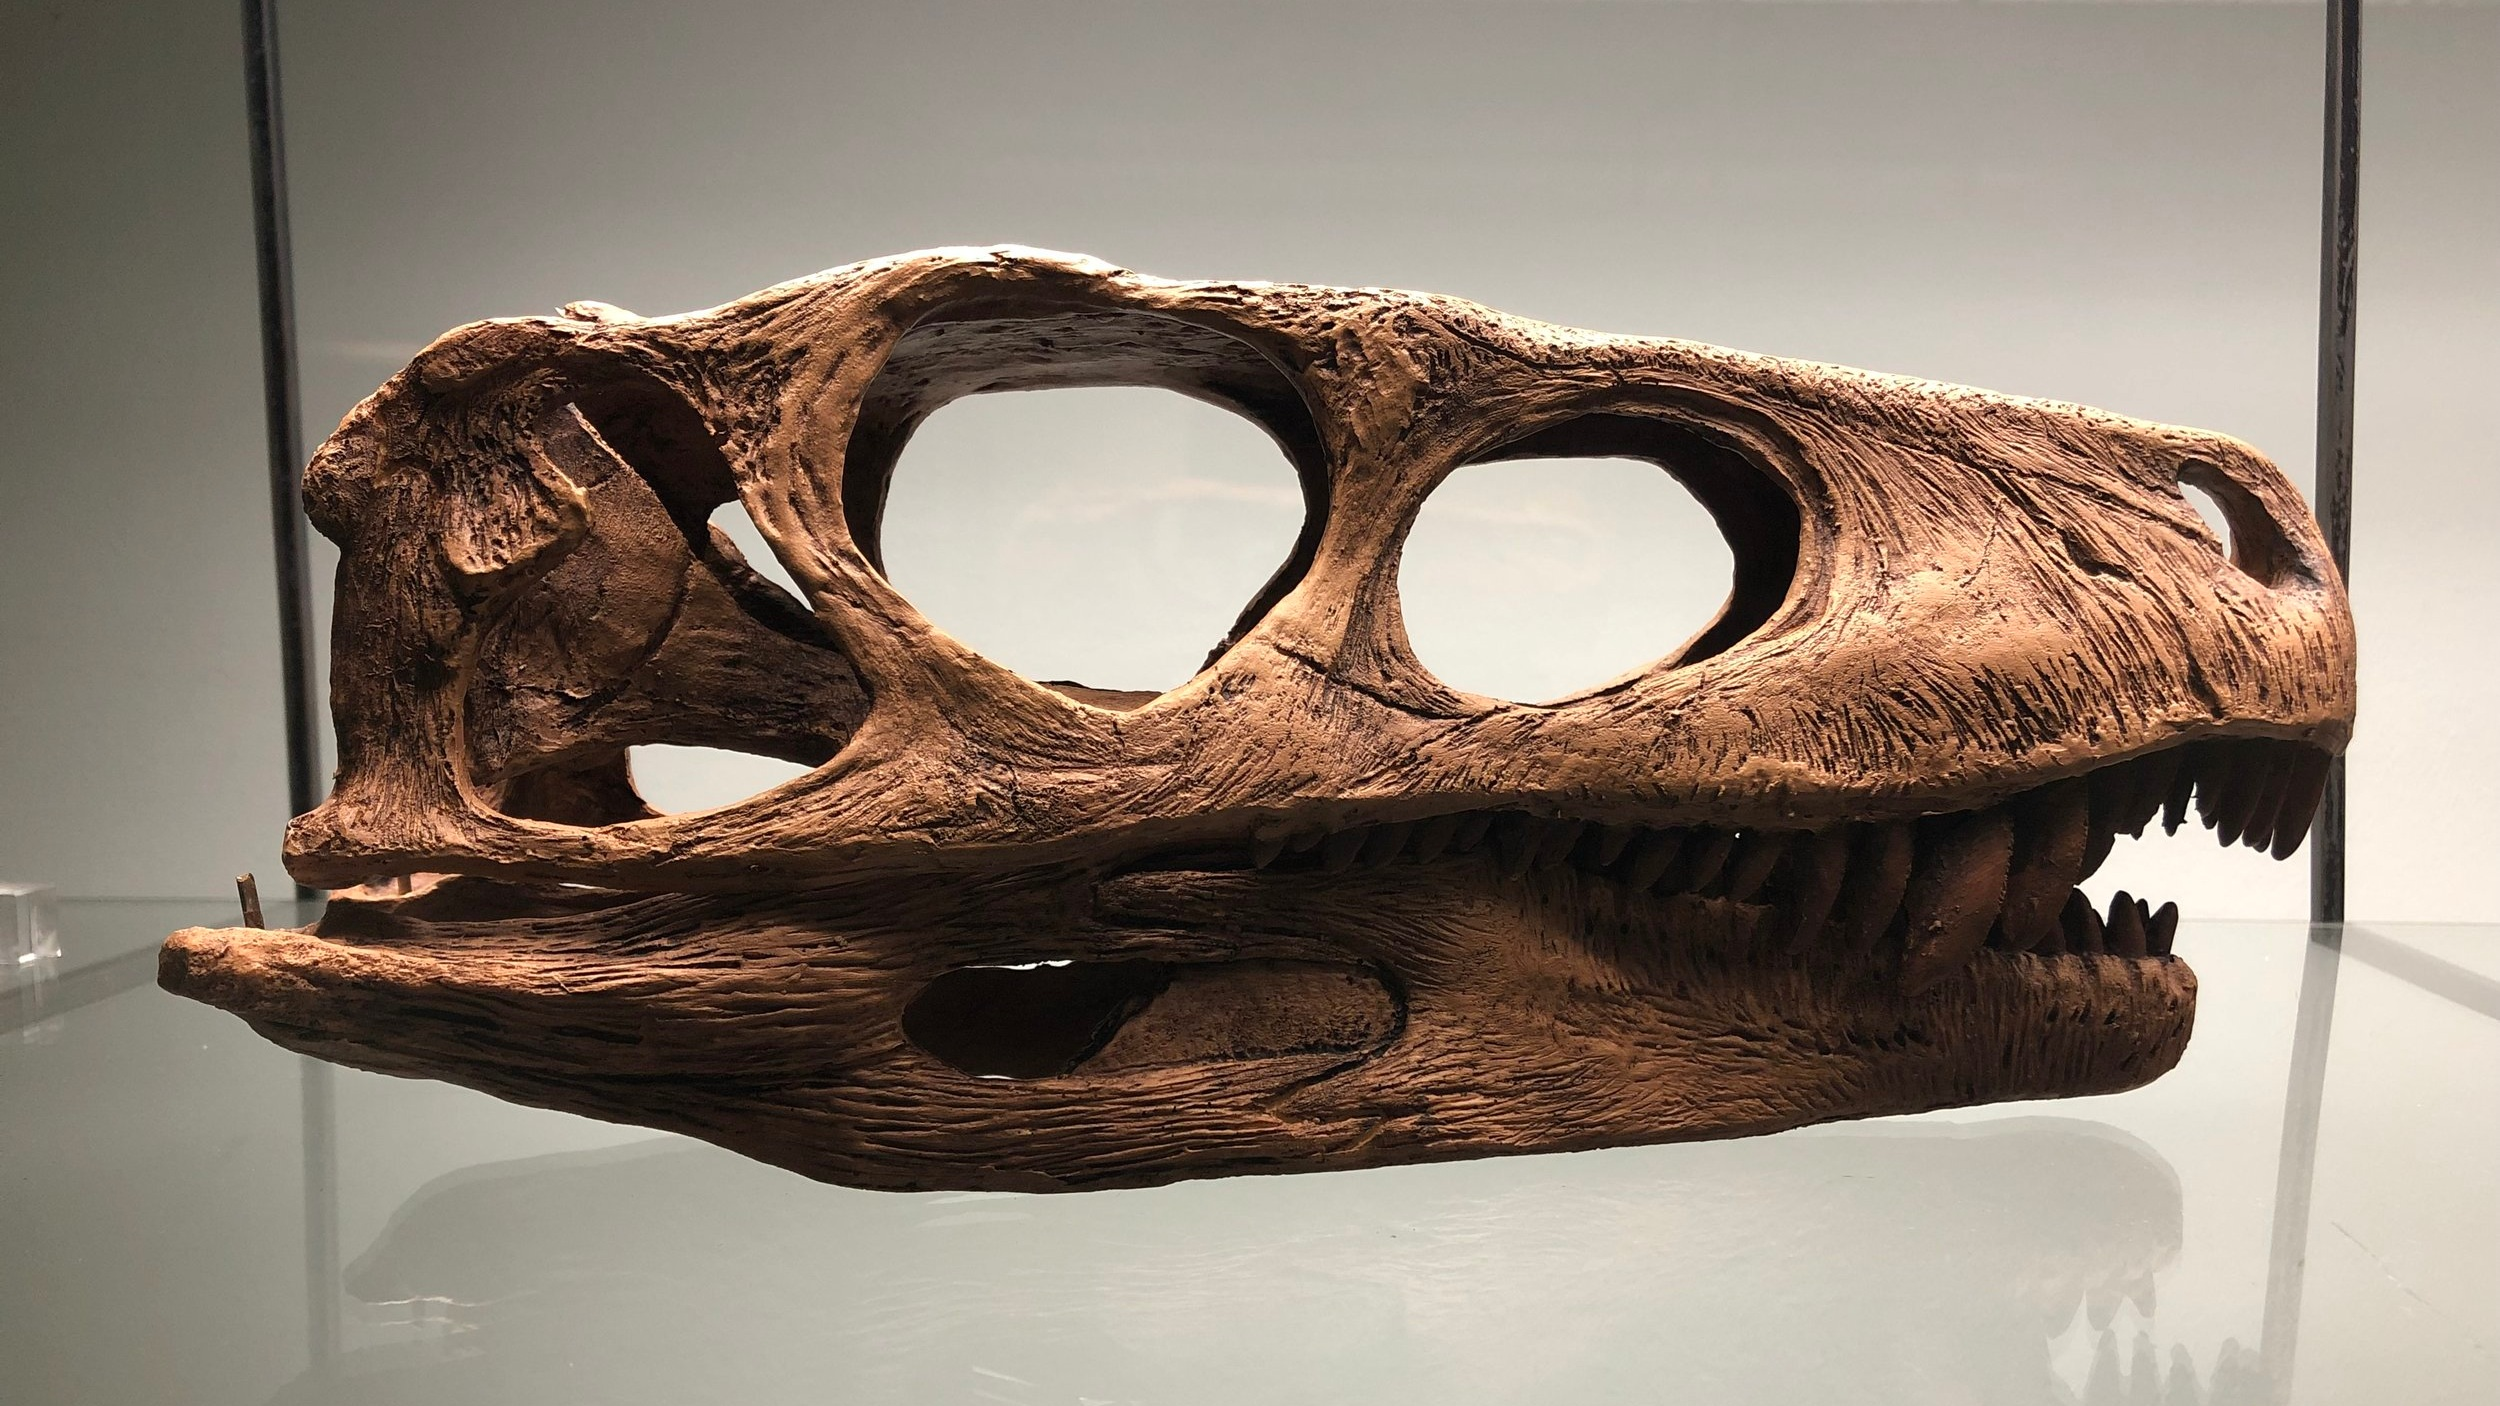 Replica of the fossilised cranium of a  Herrerasaurus ischigualastensis  | Credit: Talita Bateman